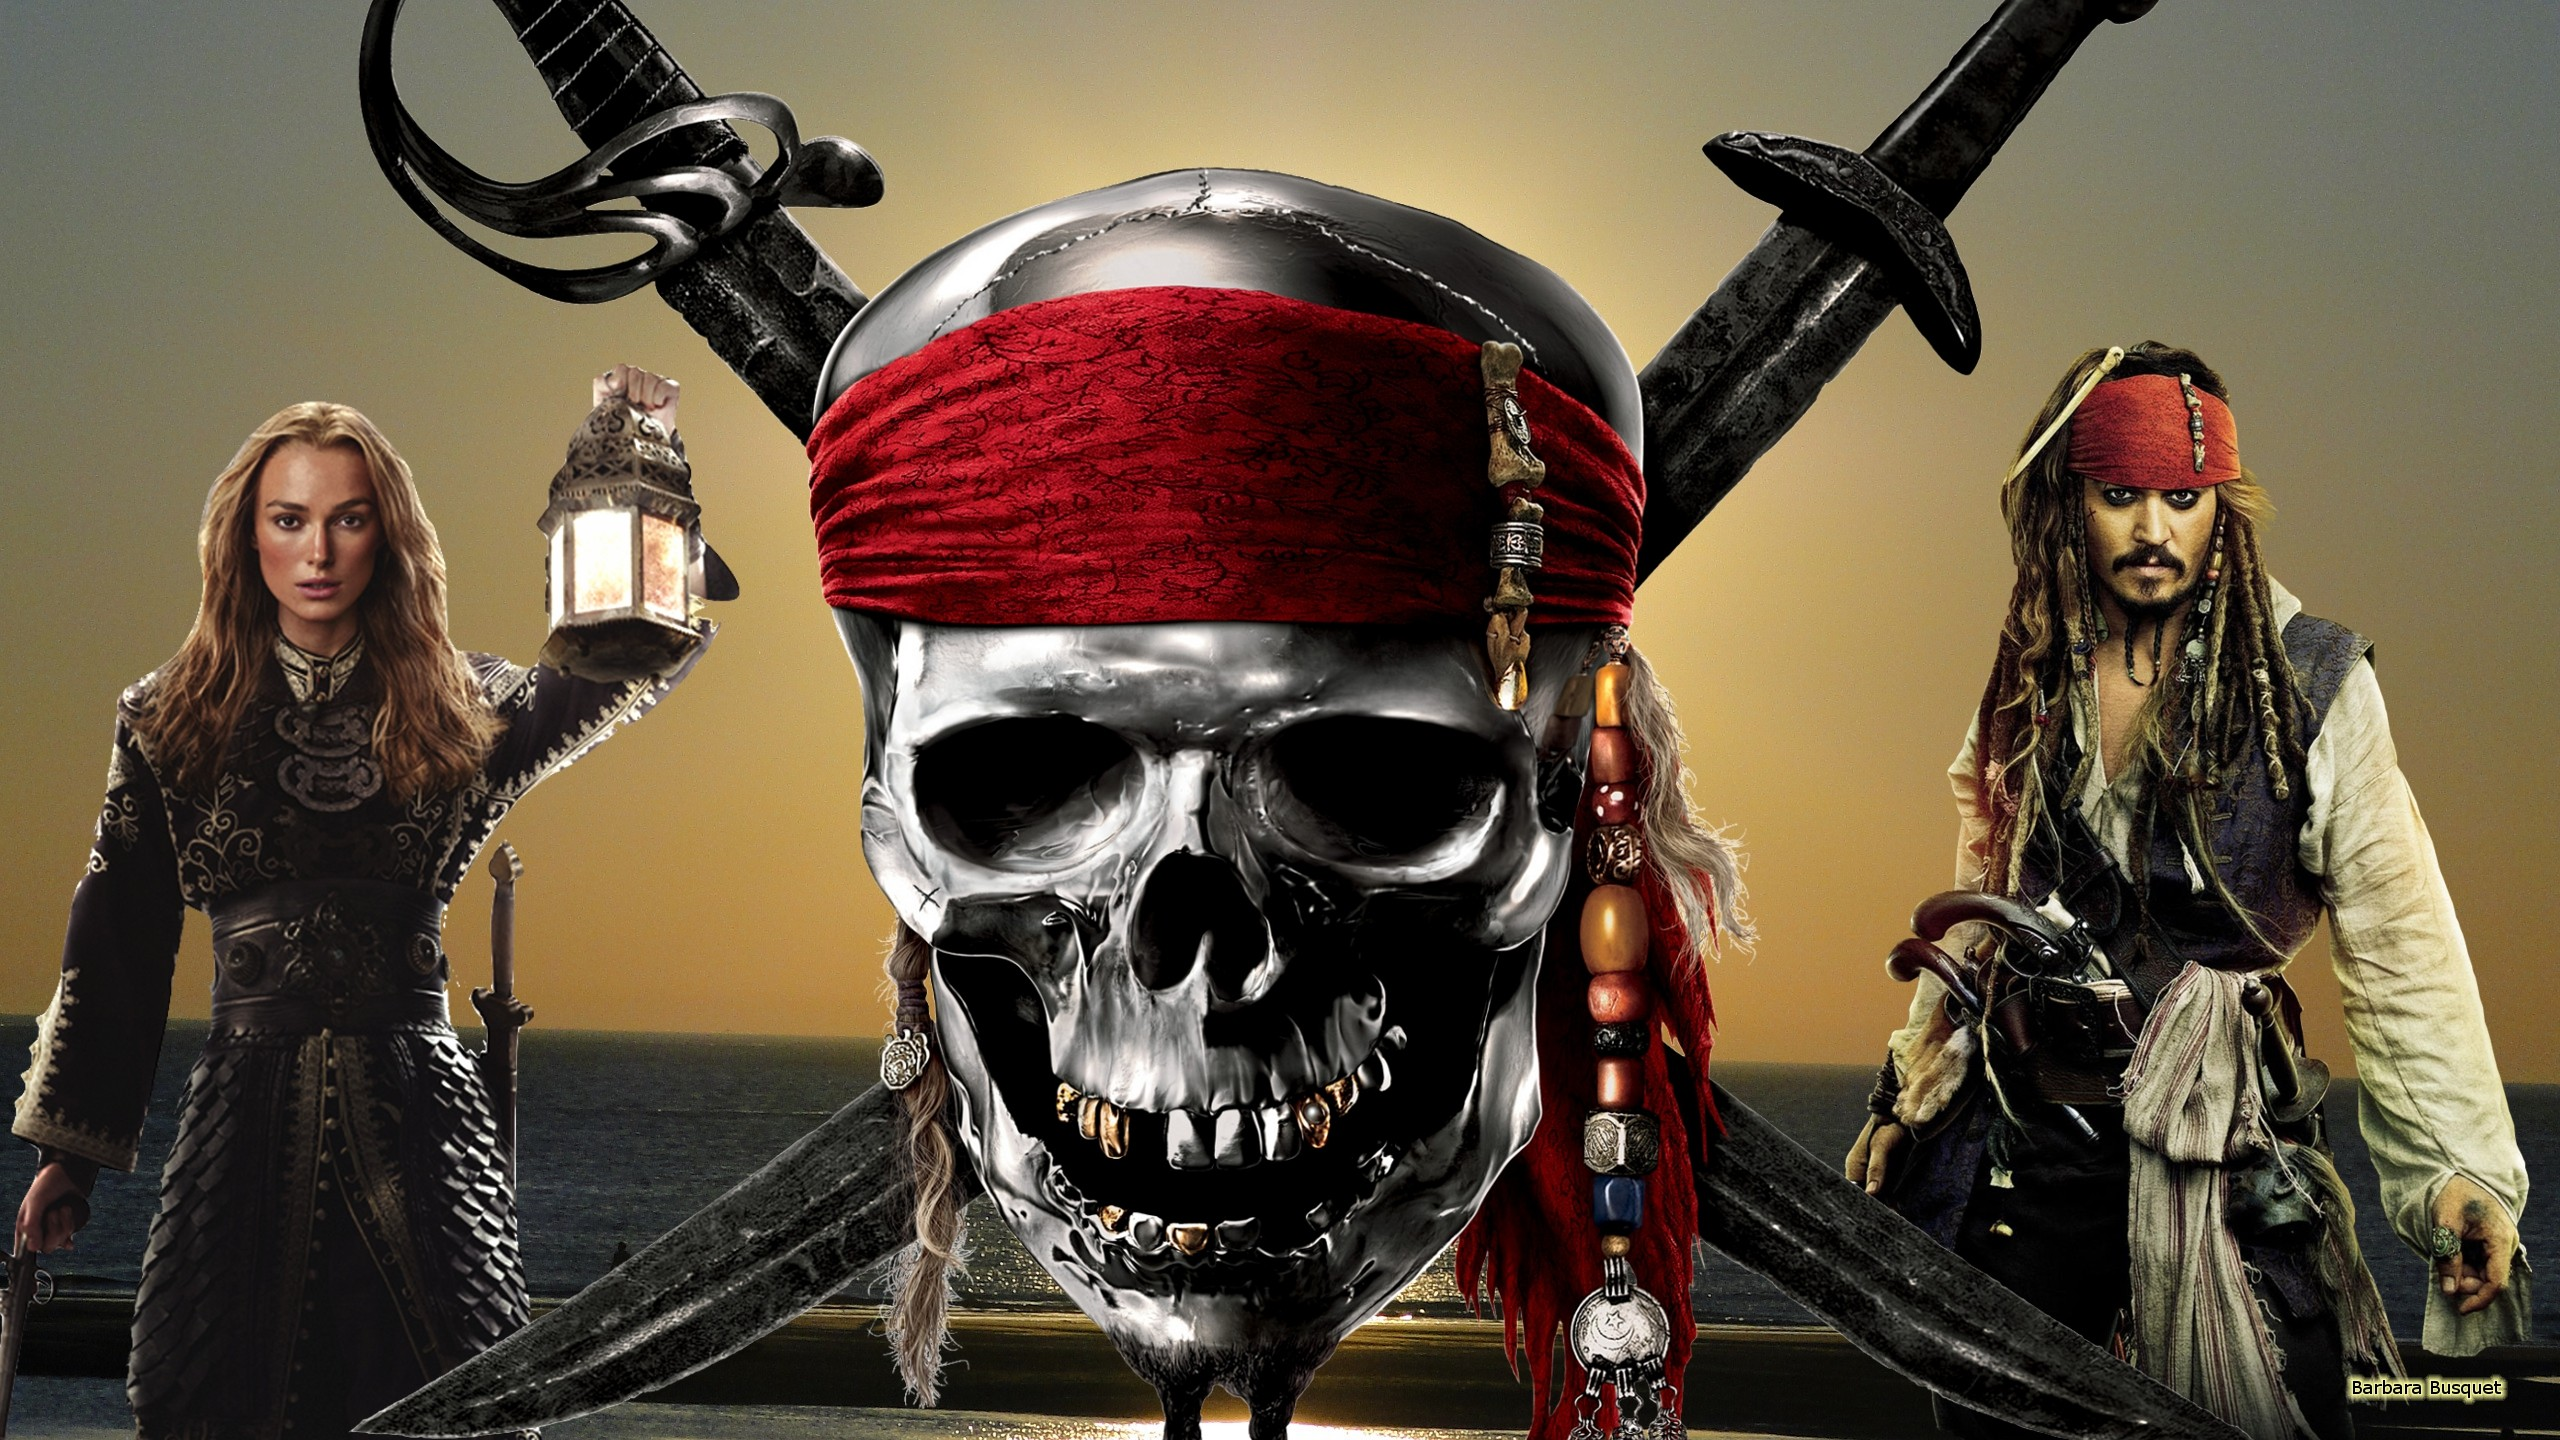 Pirates Of The Caribbean Wallpapers Barbaras Hd Wallpapers